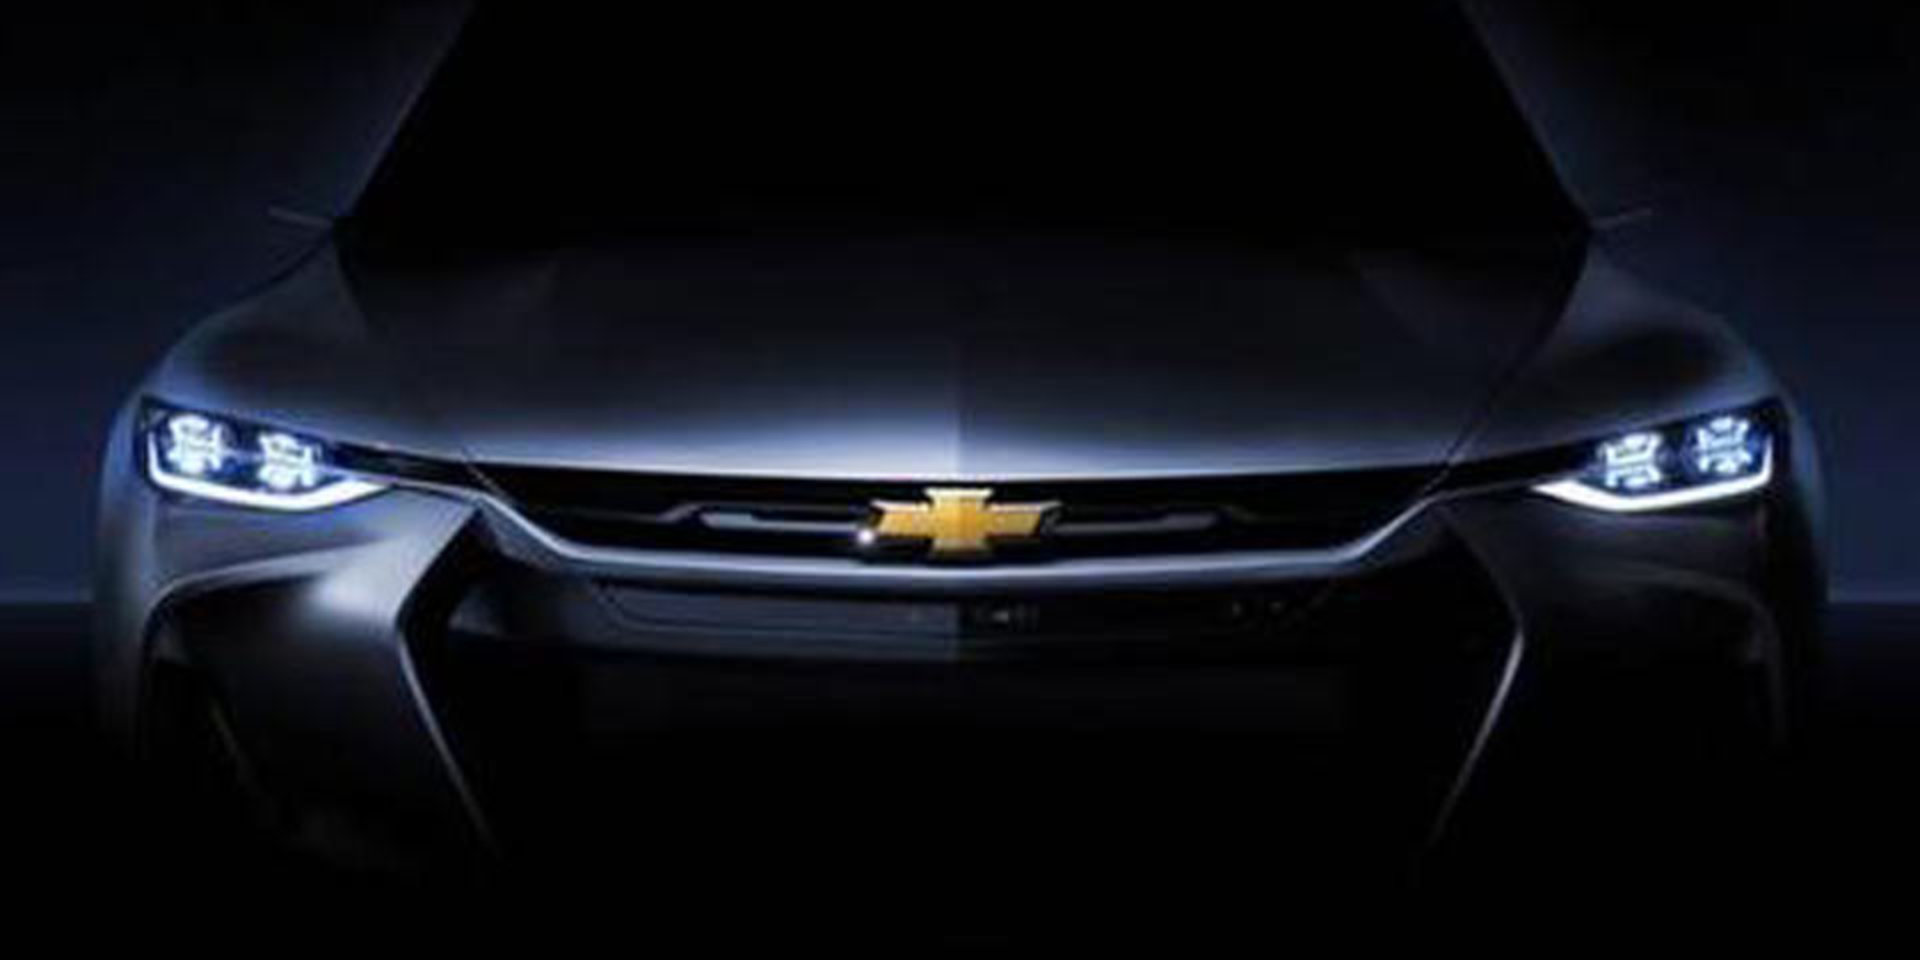 Is Chevy FNR-X concept the plug-in hybrid CrossVolt SUV?